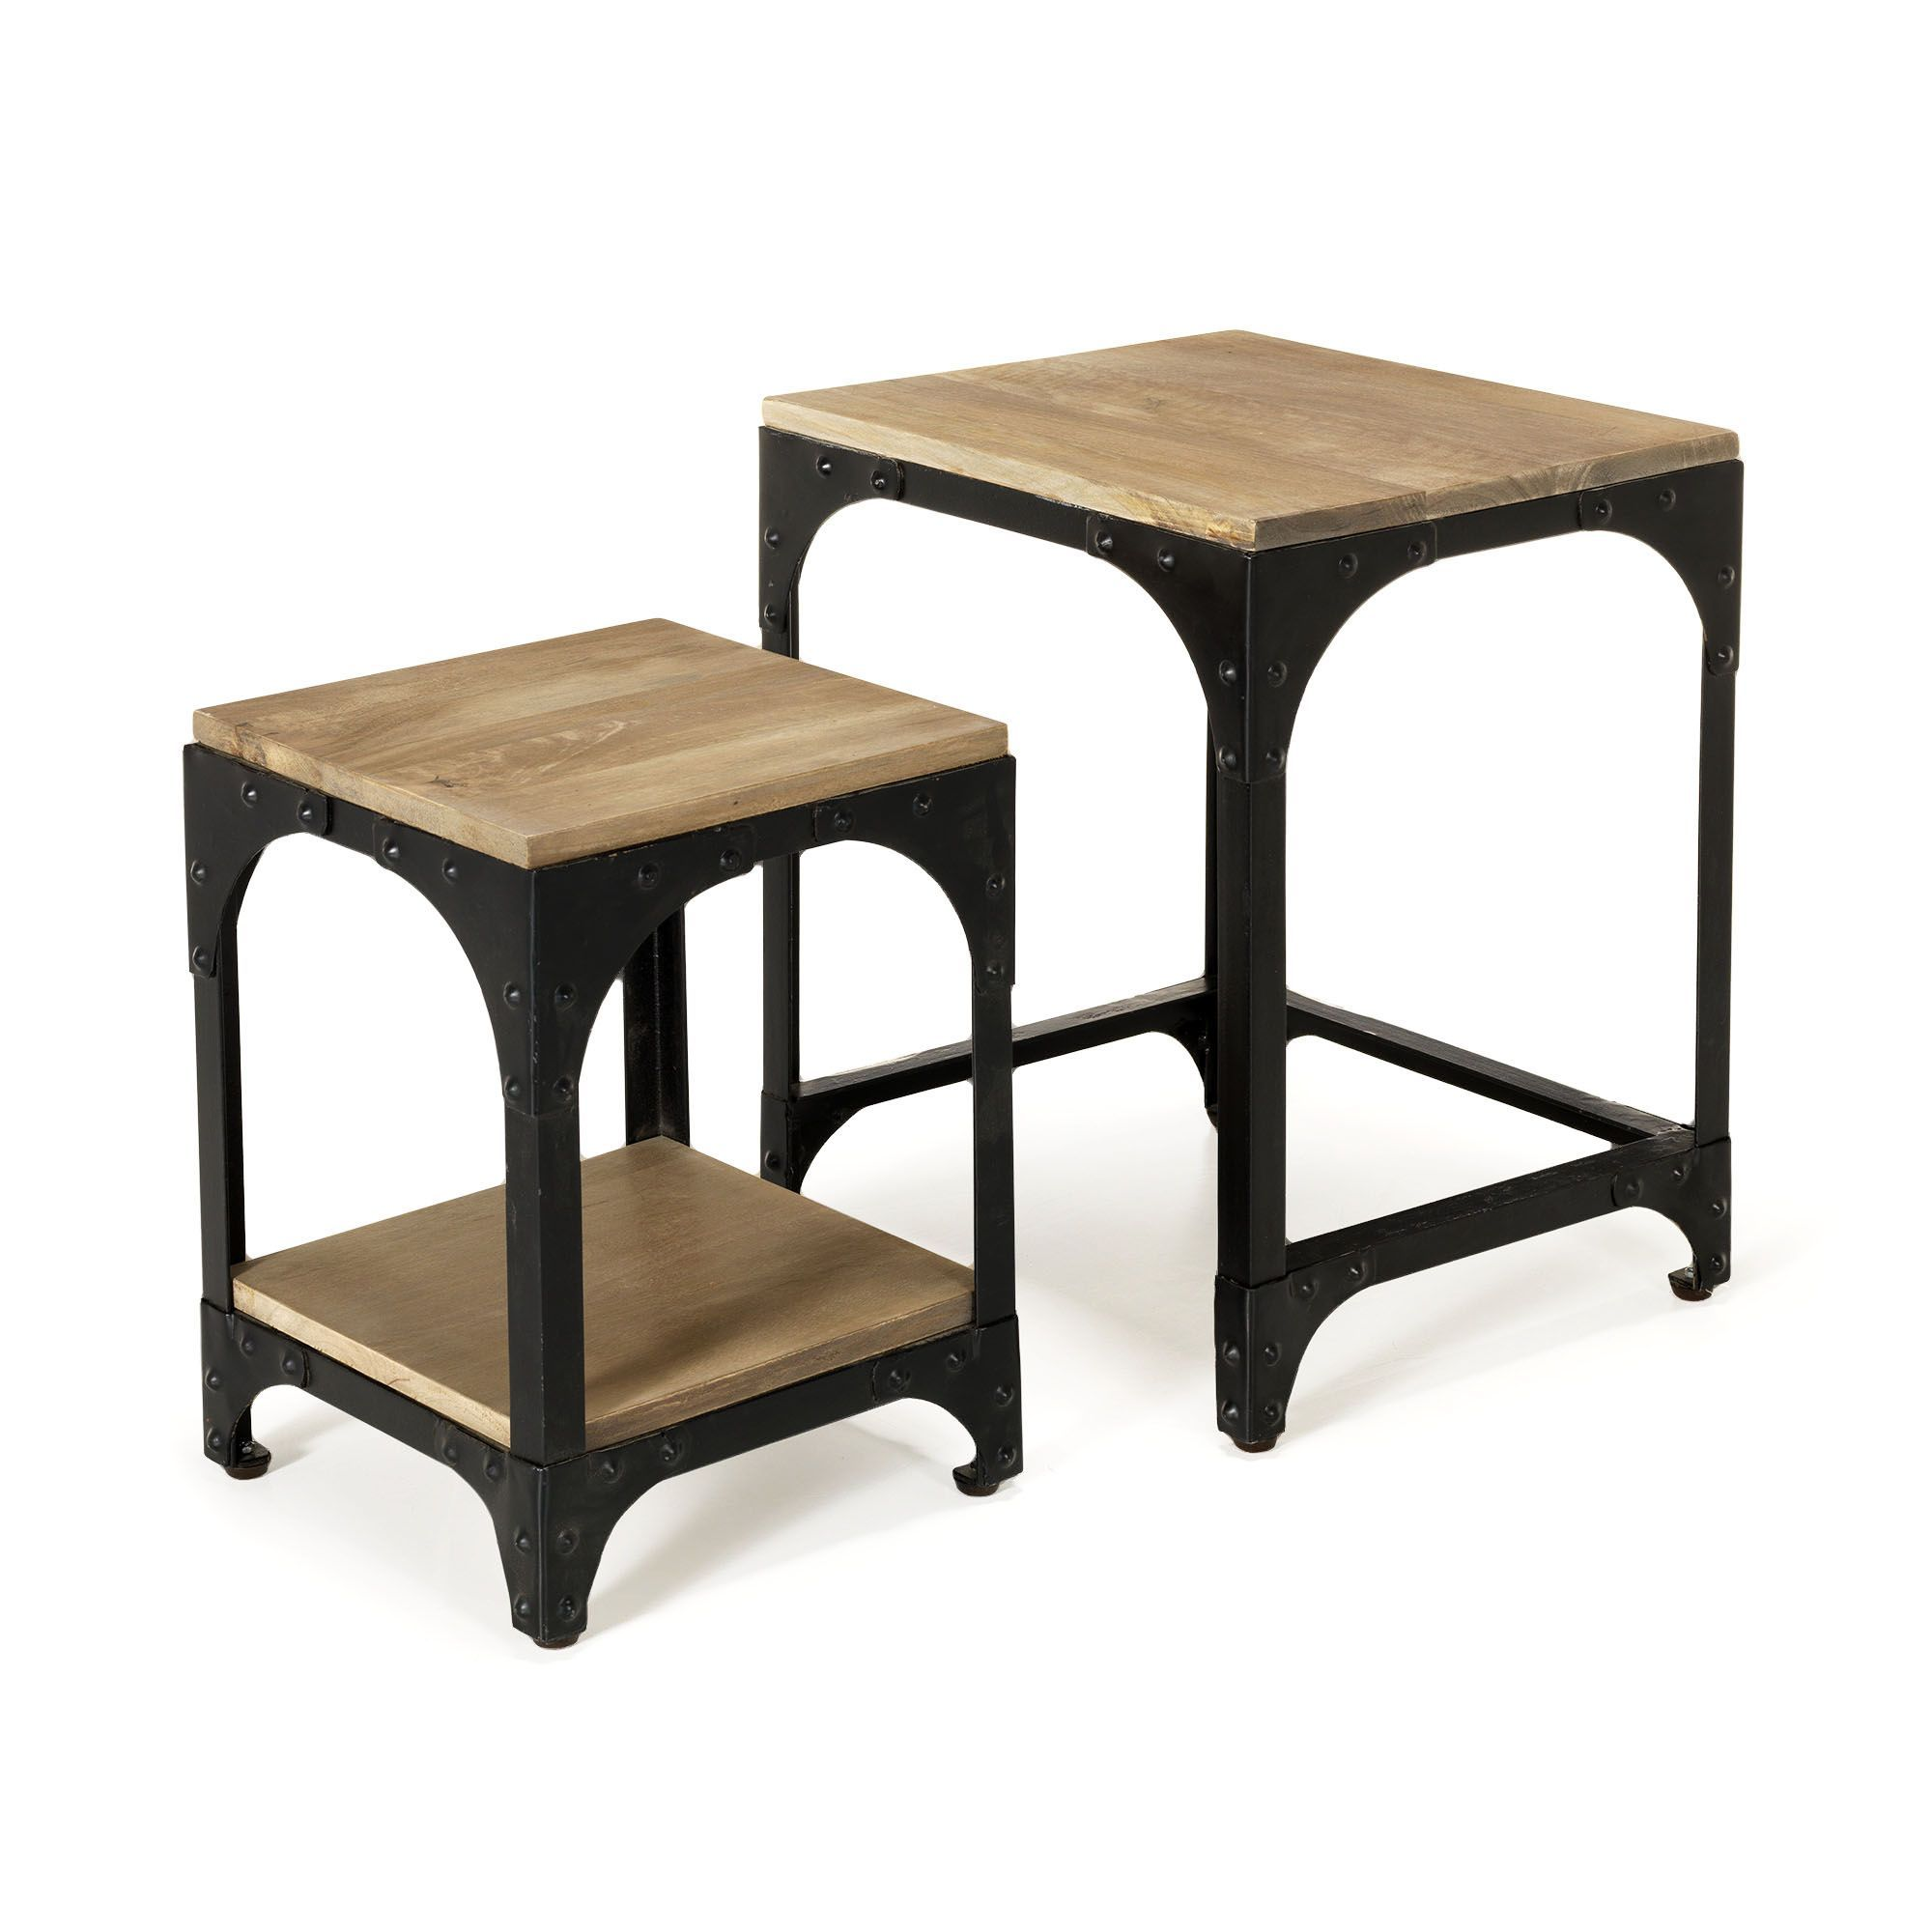 Tables basses gigognes style industriel naturel noir new ately les tables basses tables - Table de canape ...